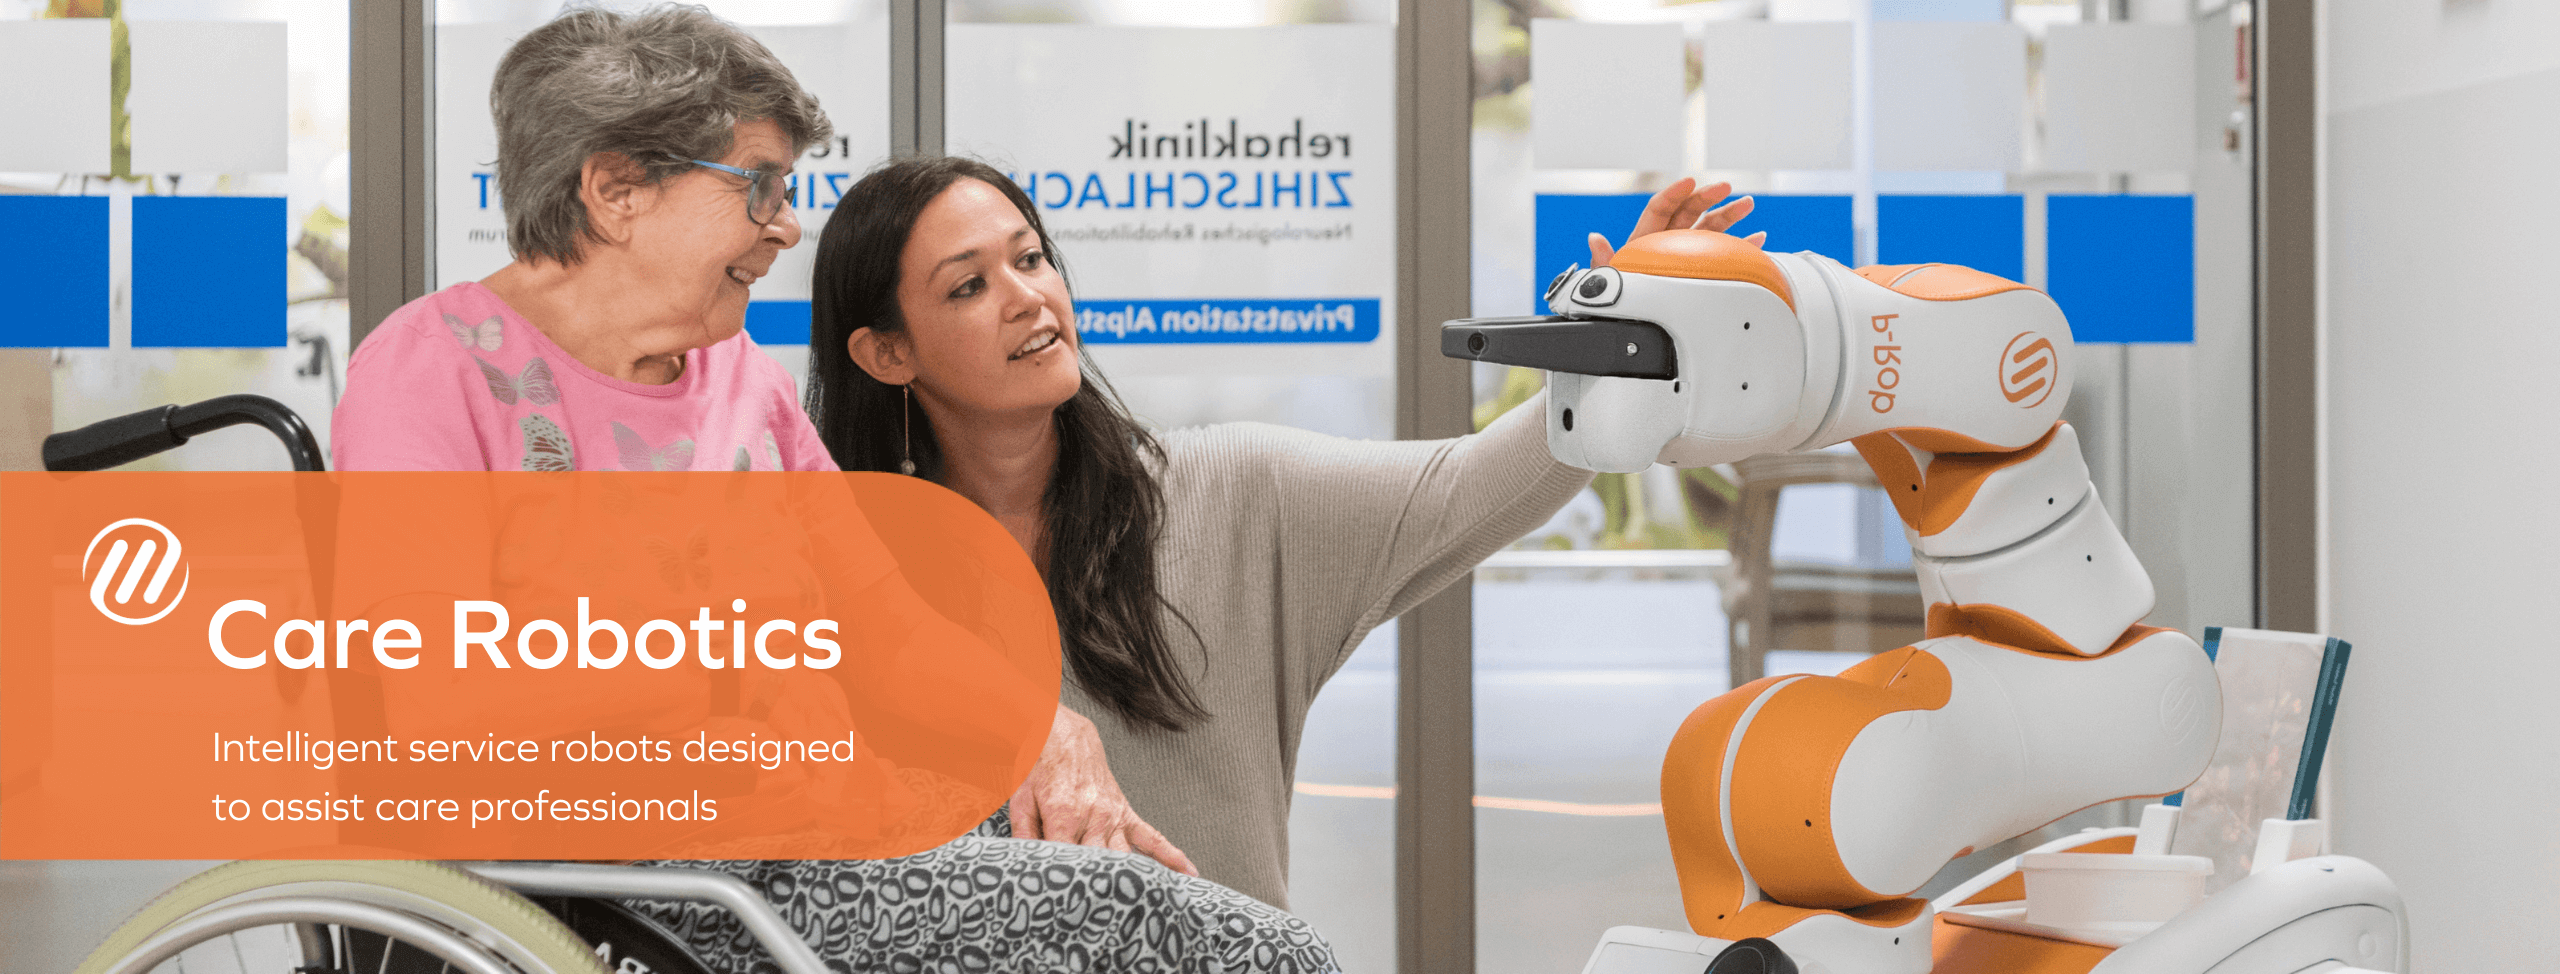 Care Robotics - Intelligent service robots designed to assist care professionals